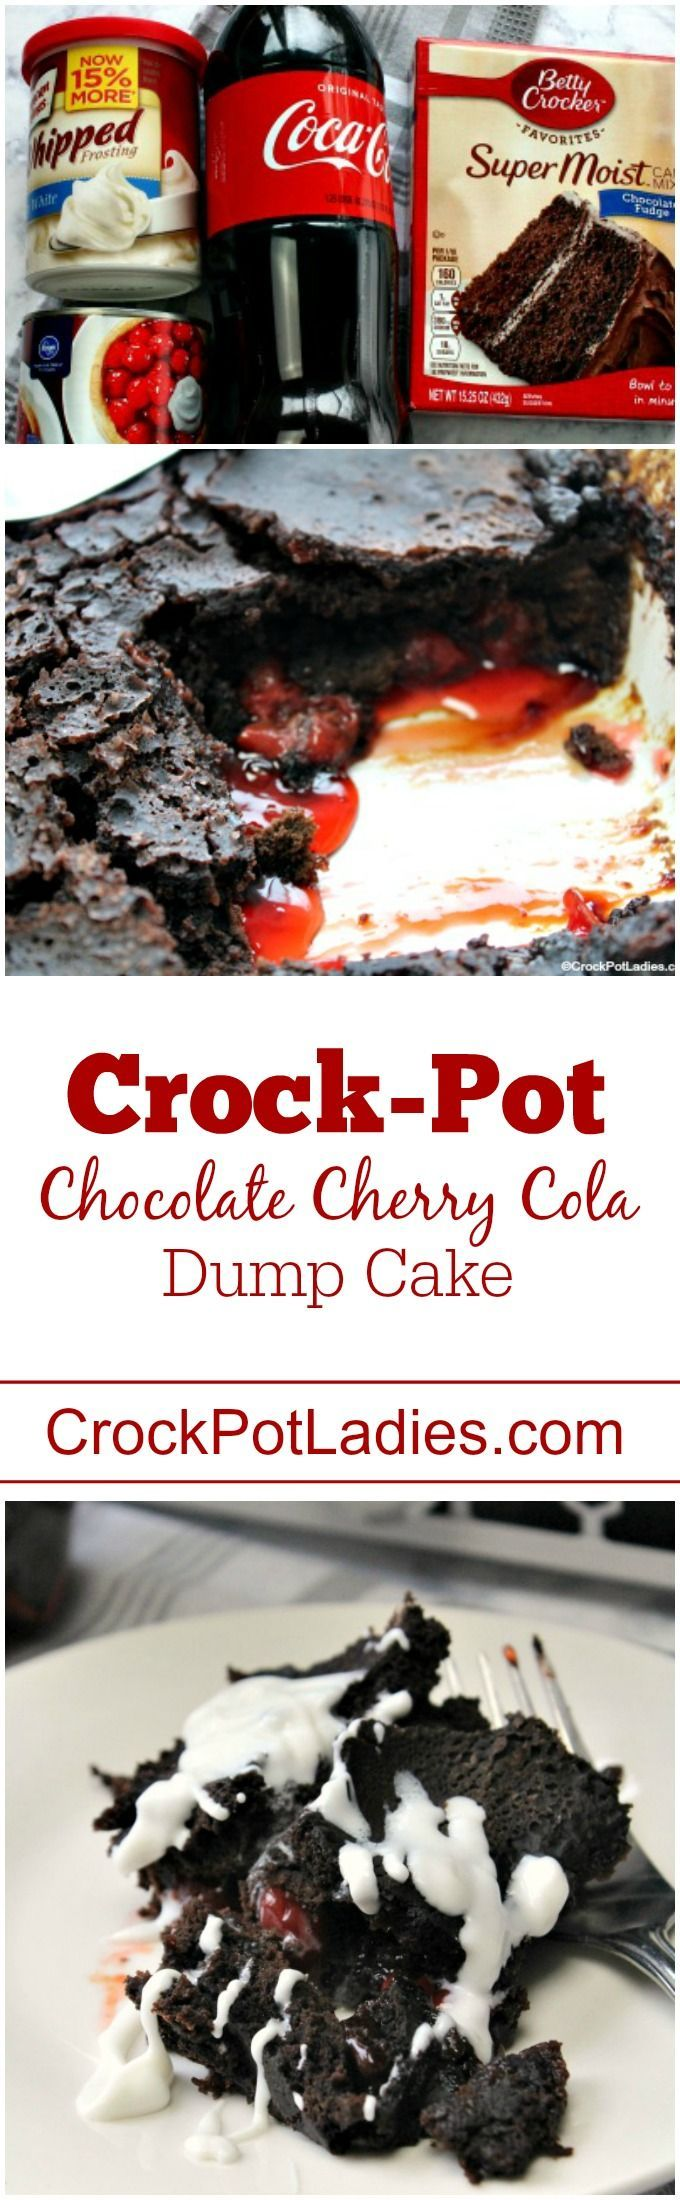 Crock-Pot Chocolate Cherry Cola Dump Cake - With just 4 ingredients this easy to make dessert recipe for Crock-Pot Chocolate Cherry Cola Dump Cake could not be simpler to make and the flavor is out of this world!